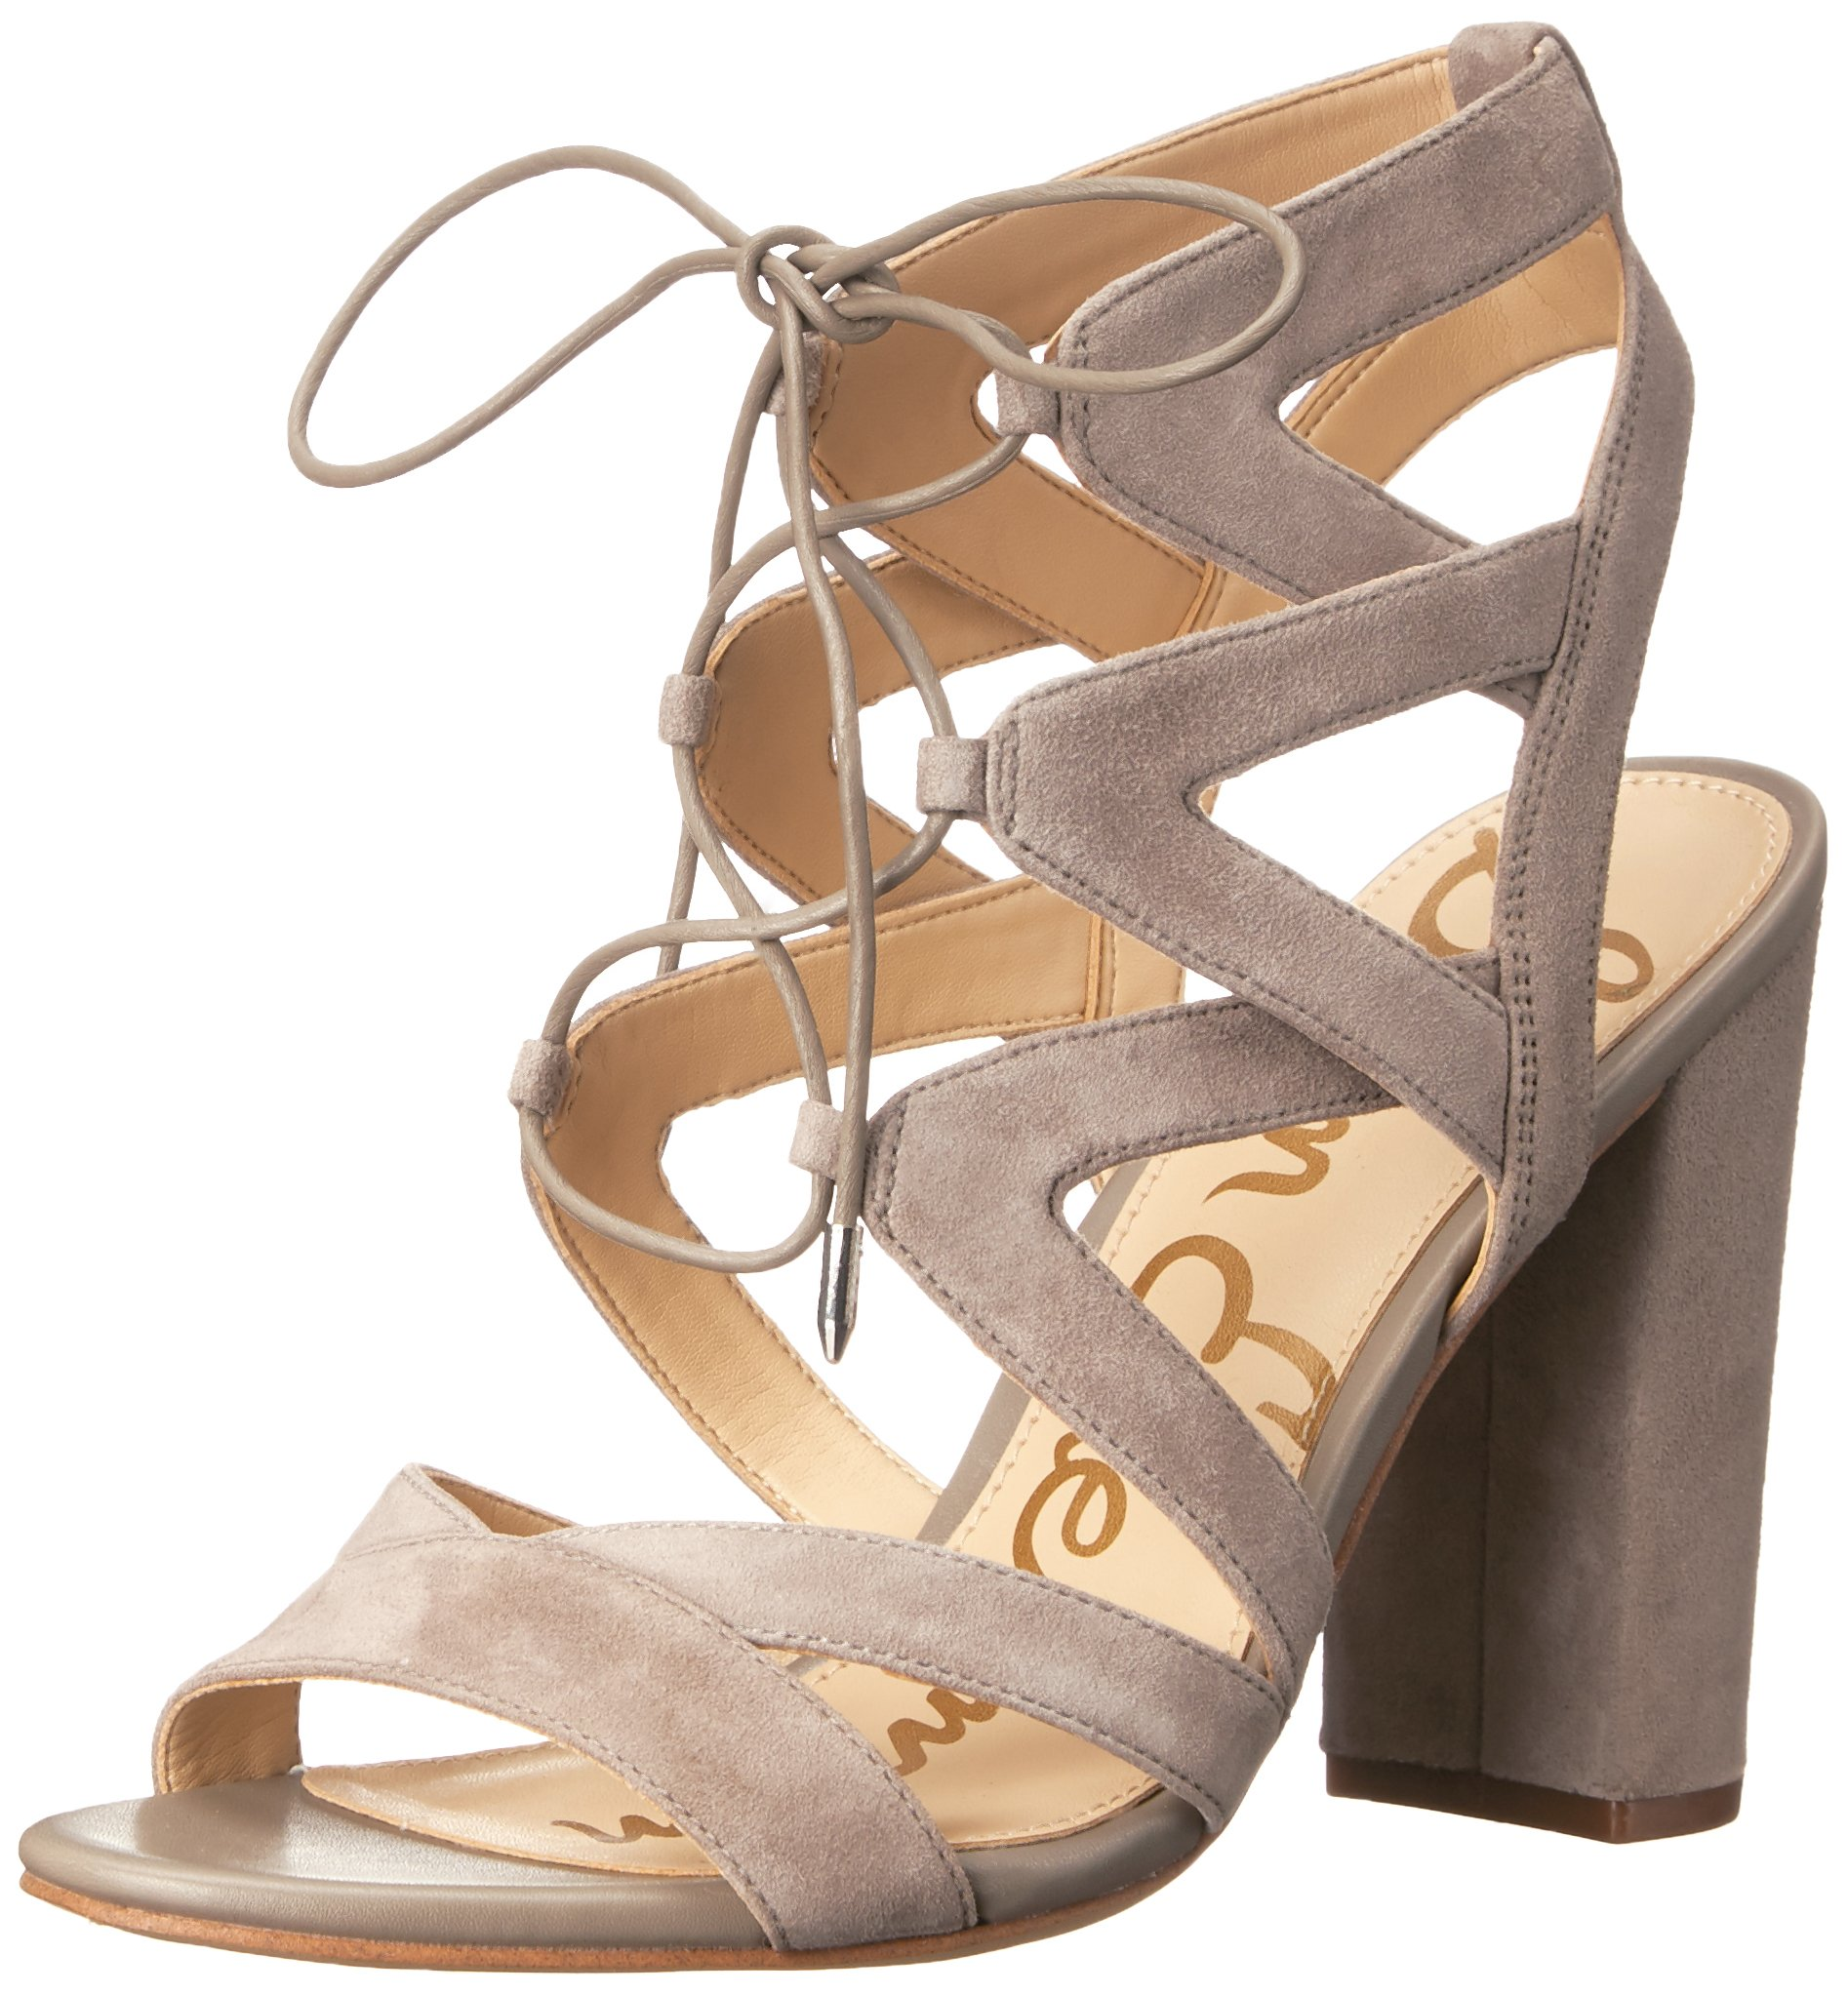 Sam Edelman Women's Yardley Heeled Sandal, Putty Suede, 7 M US by Sam Edelman